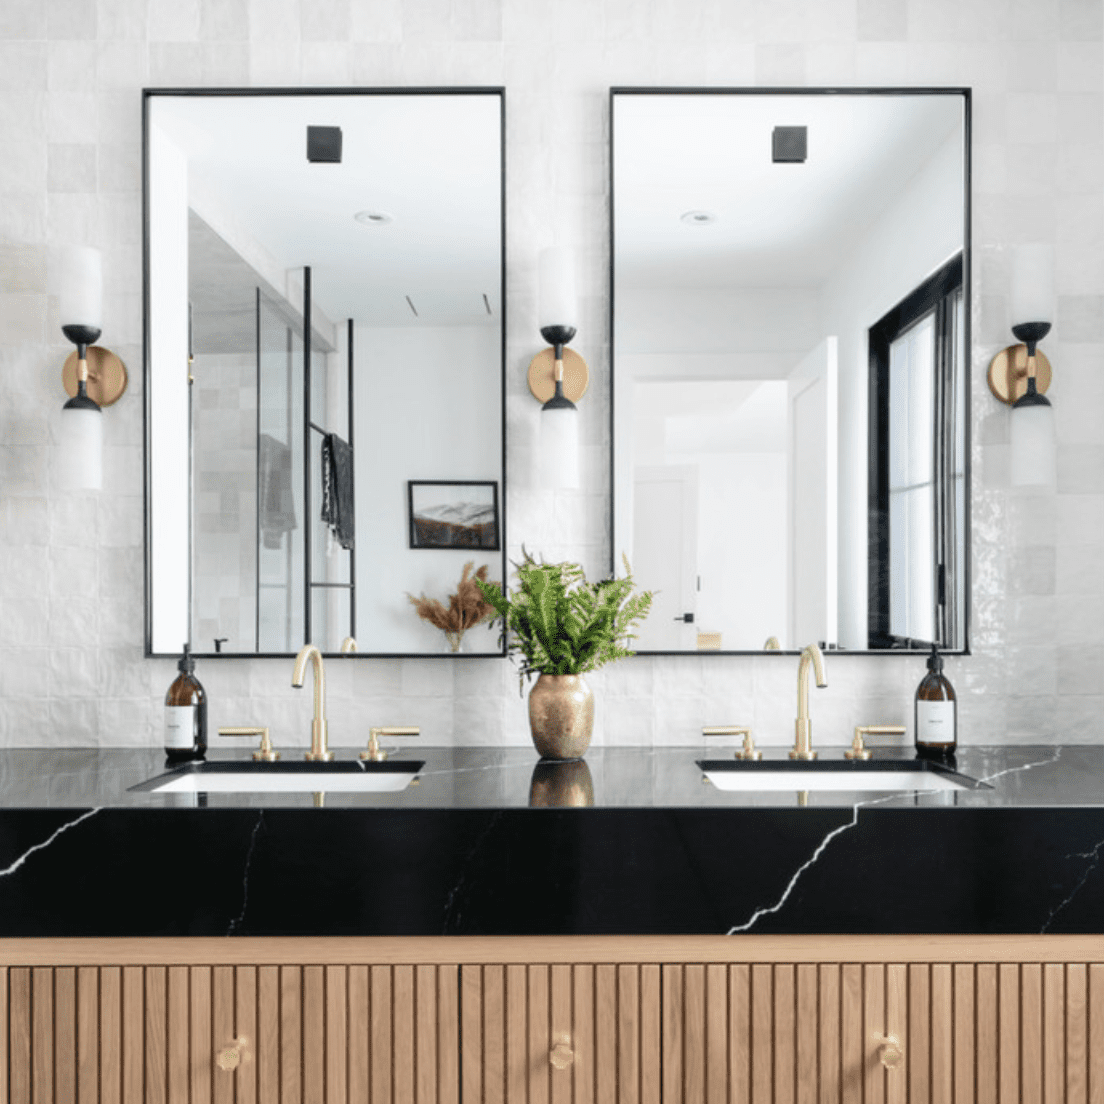 A bathroom with two mirrors, a shiny white backsplash, black marble countertops, and wood cabinets